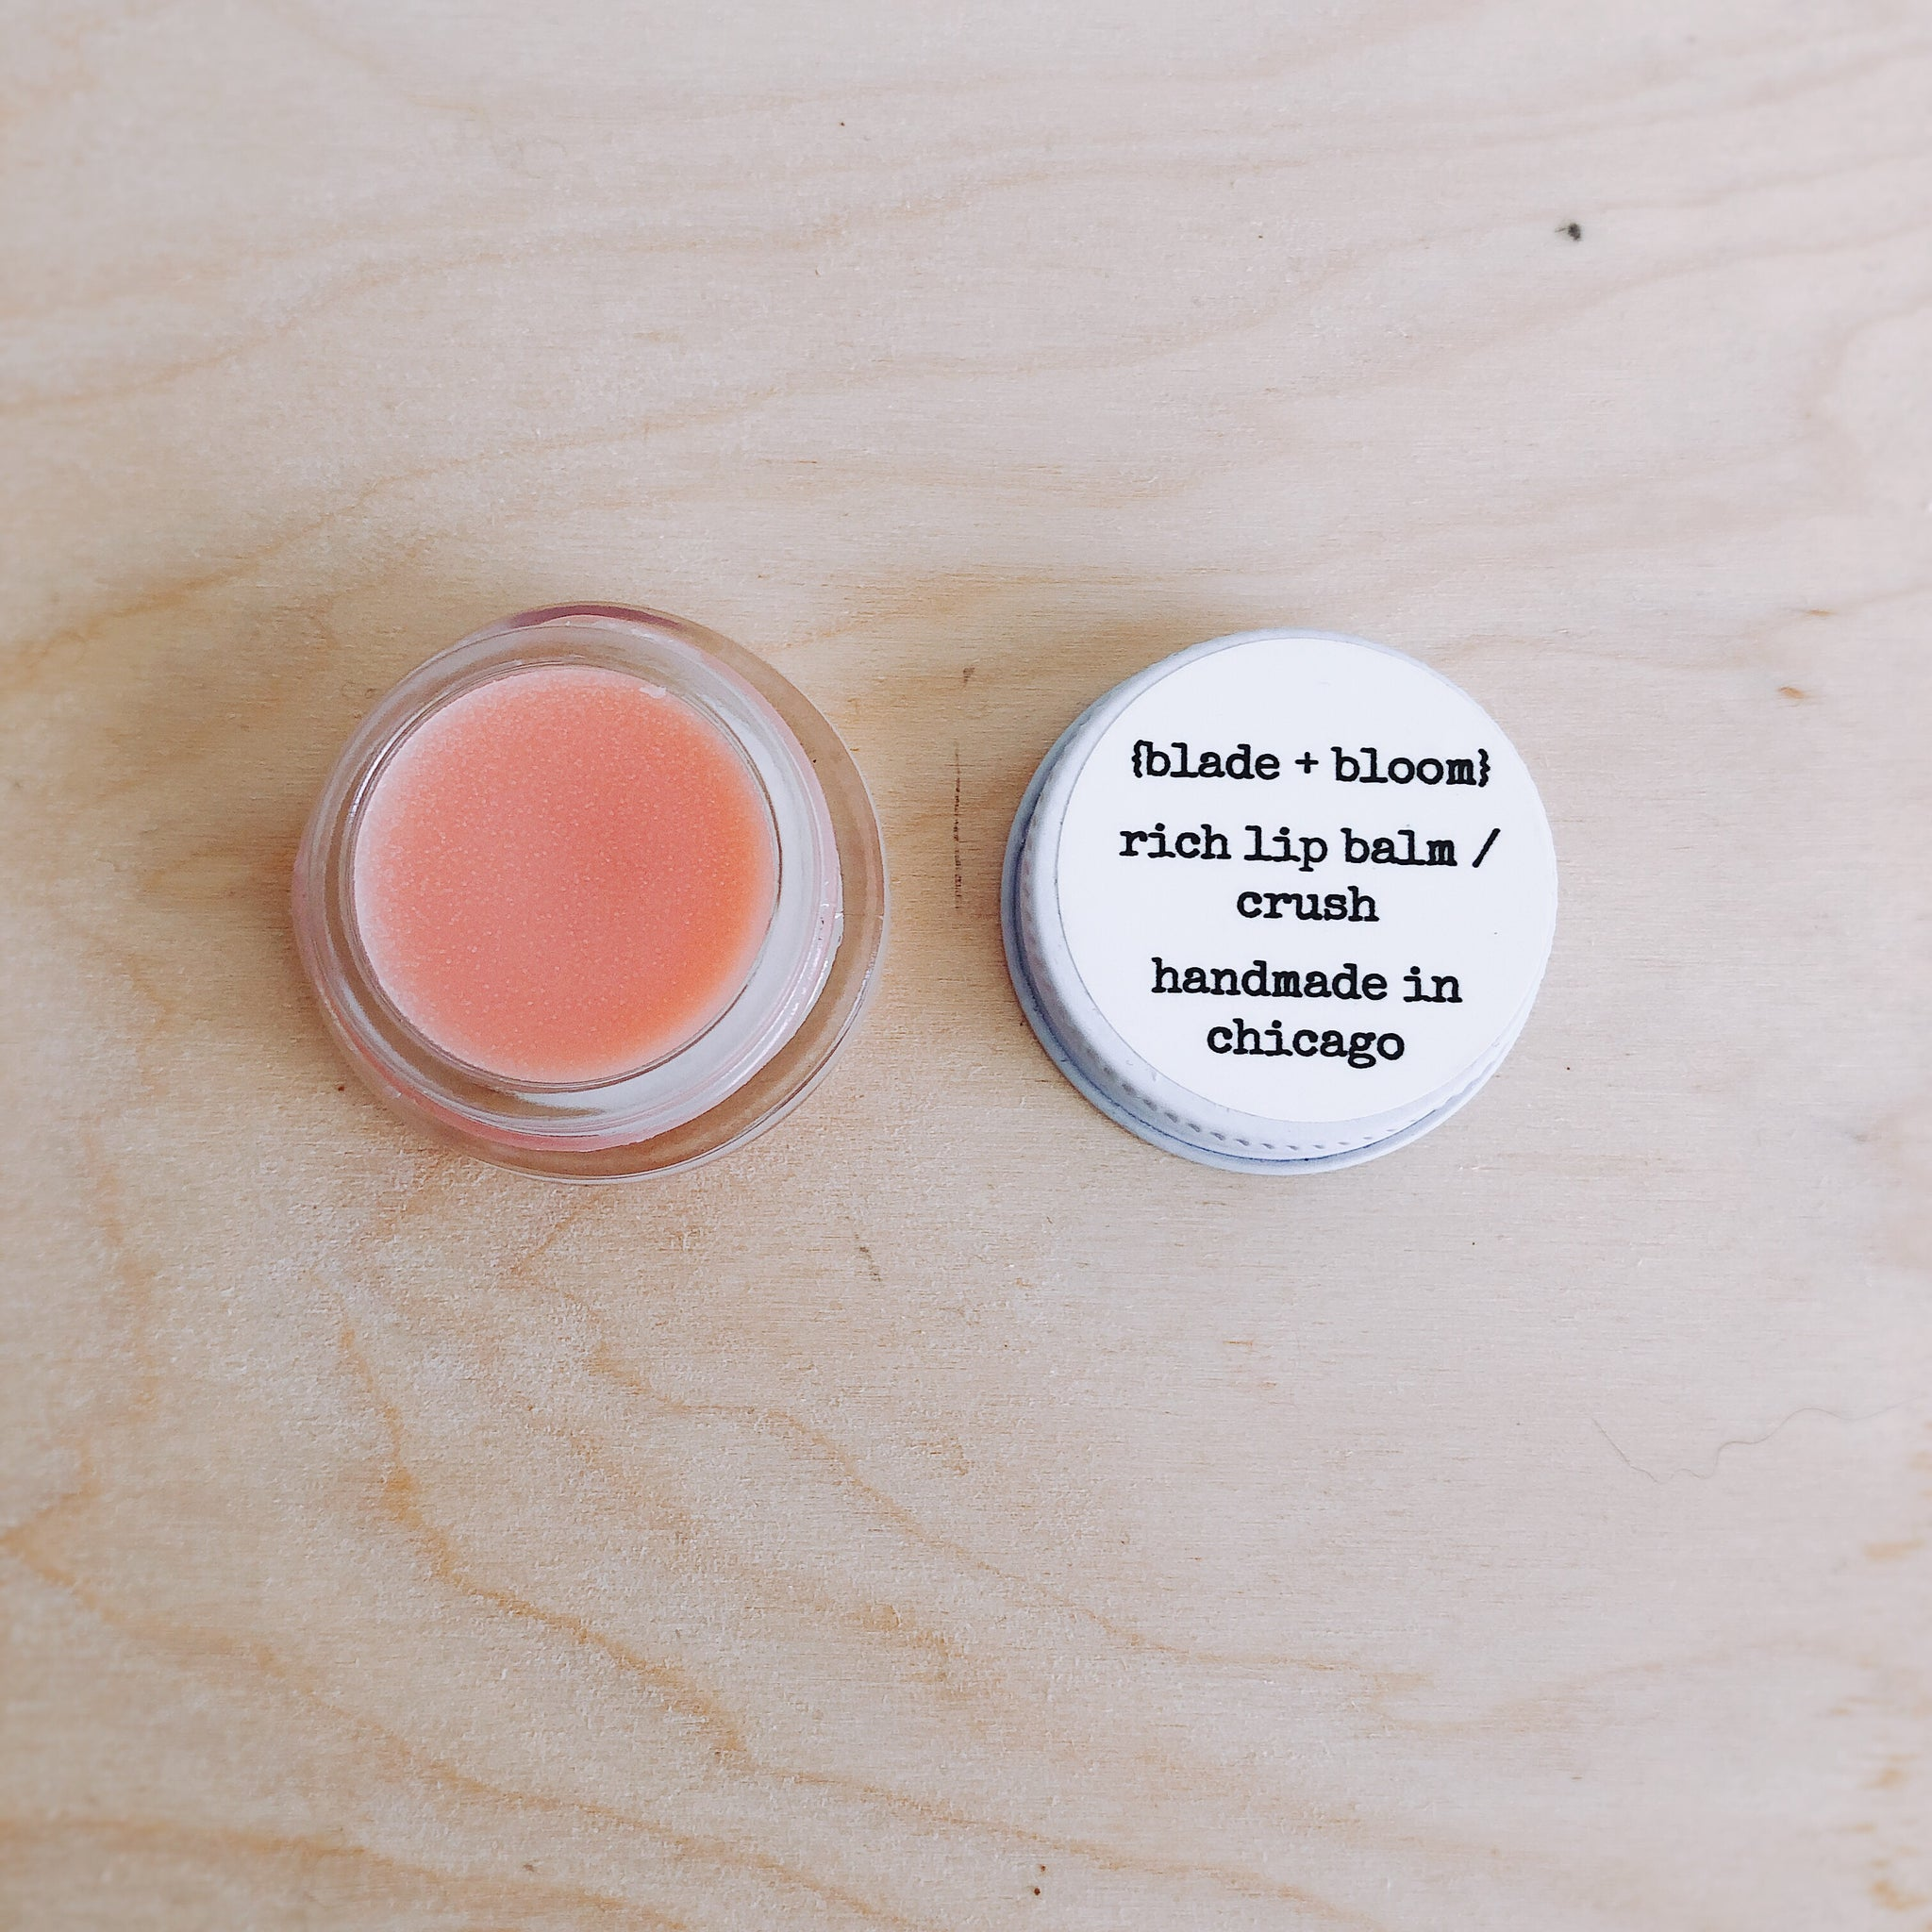 rich lip balm / crush